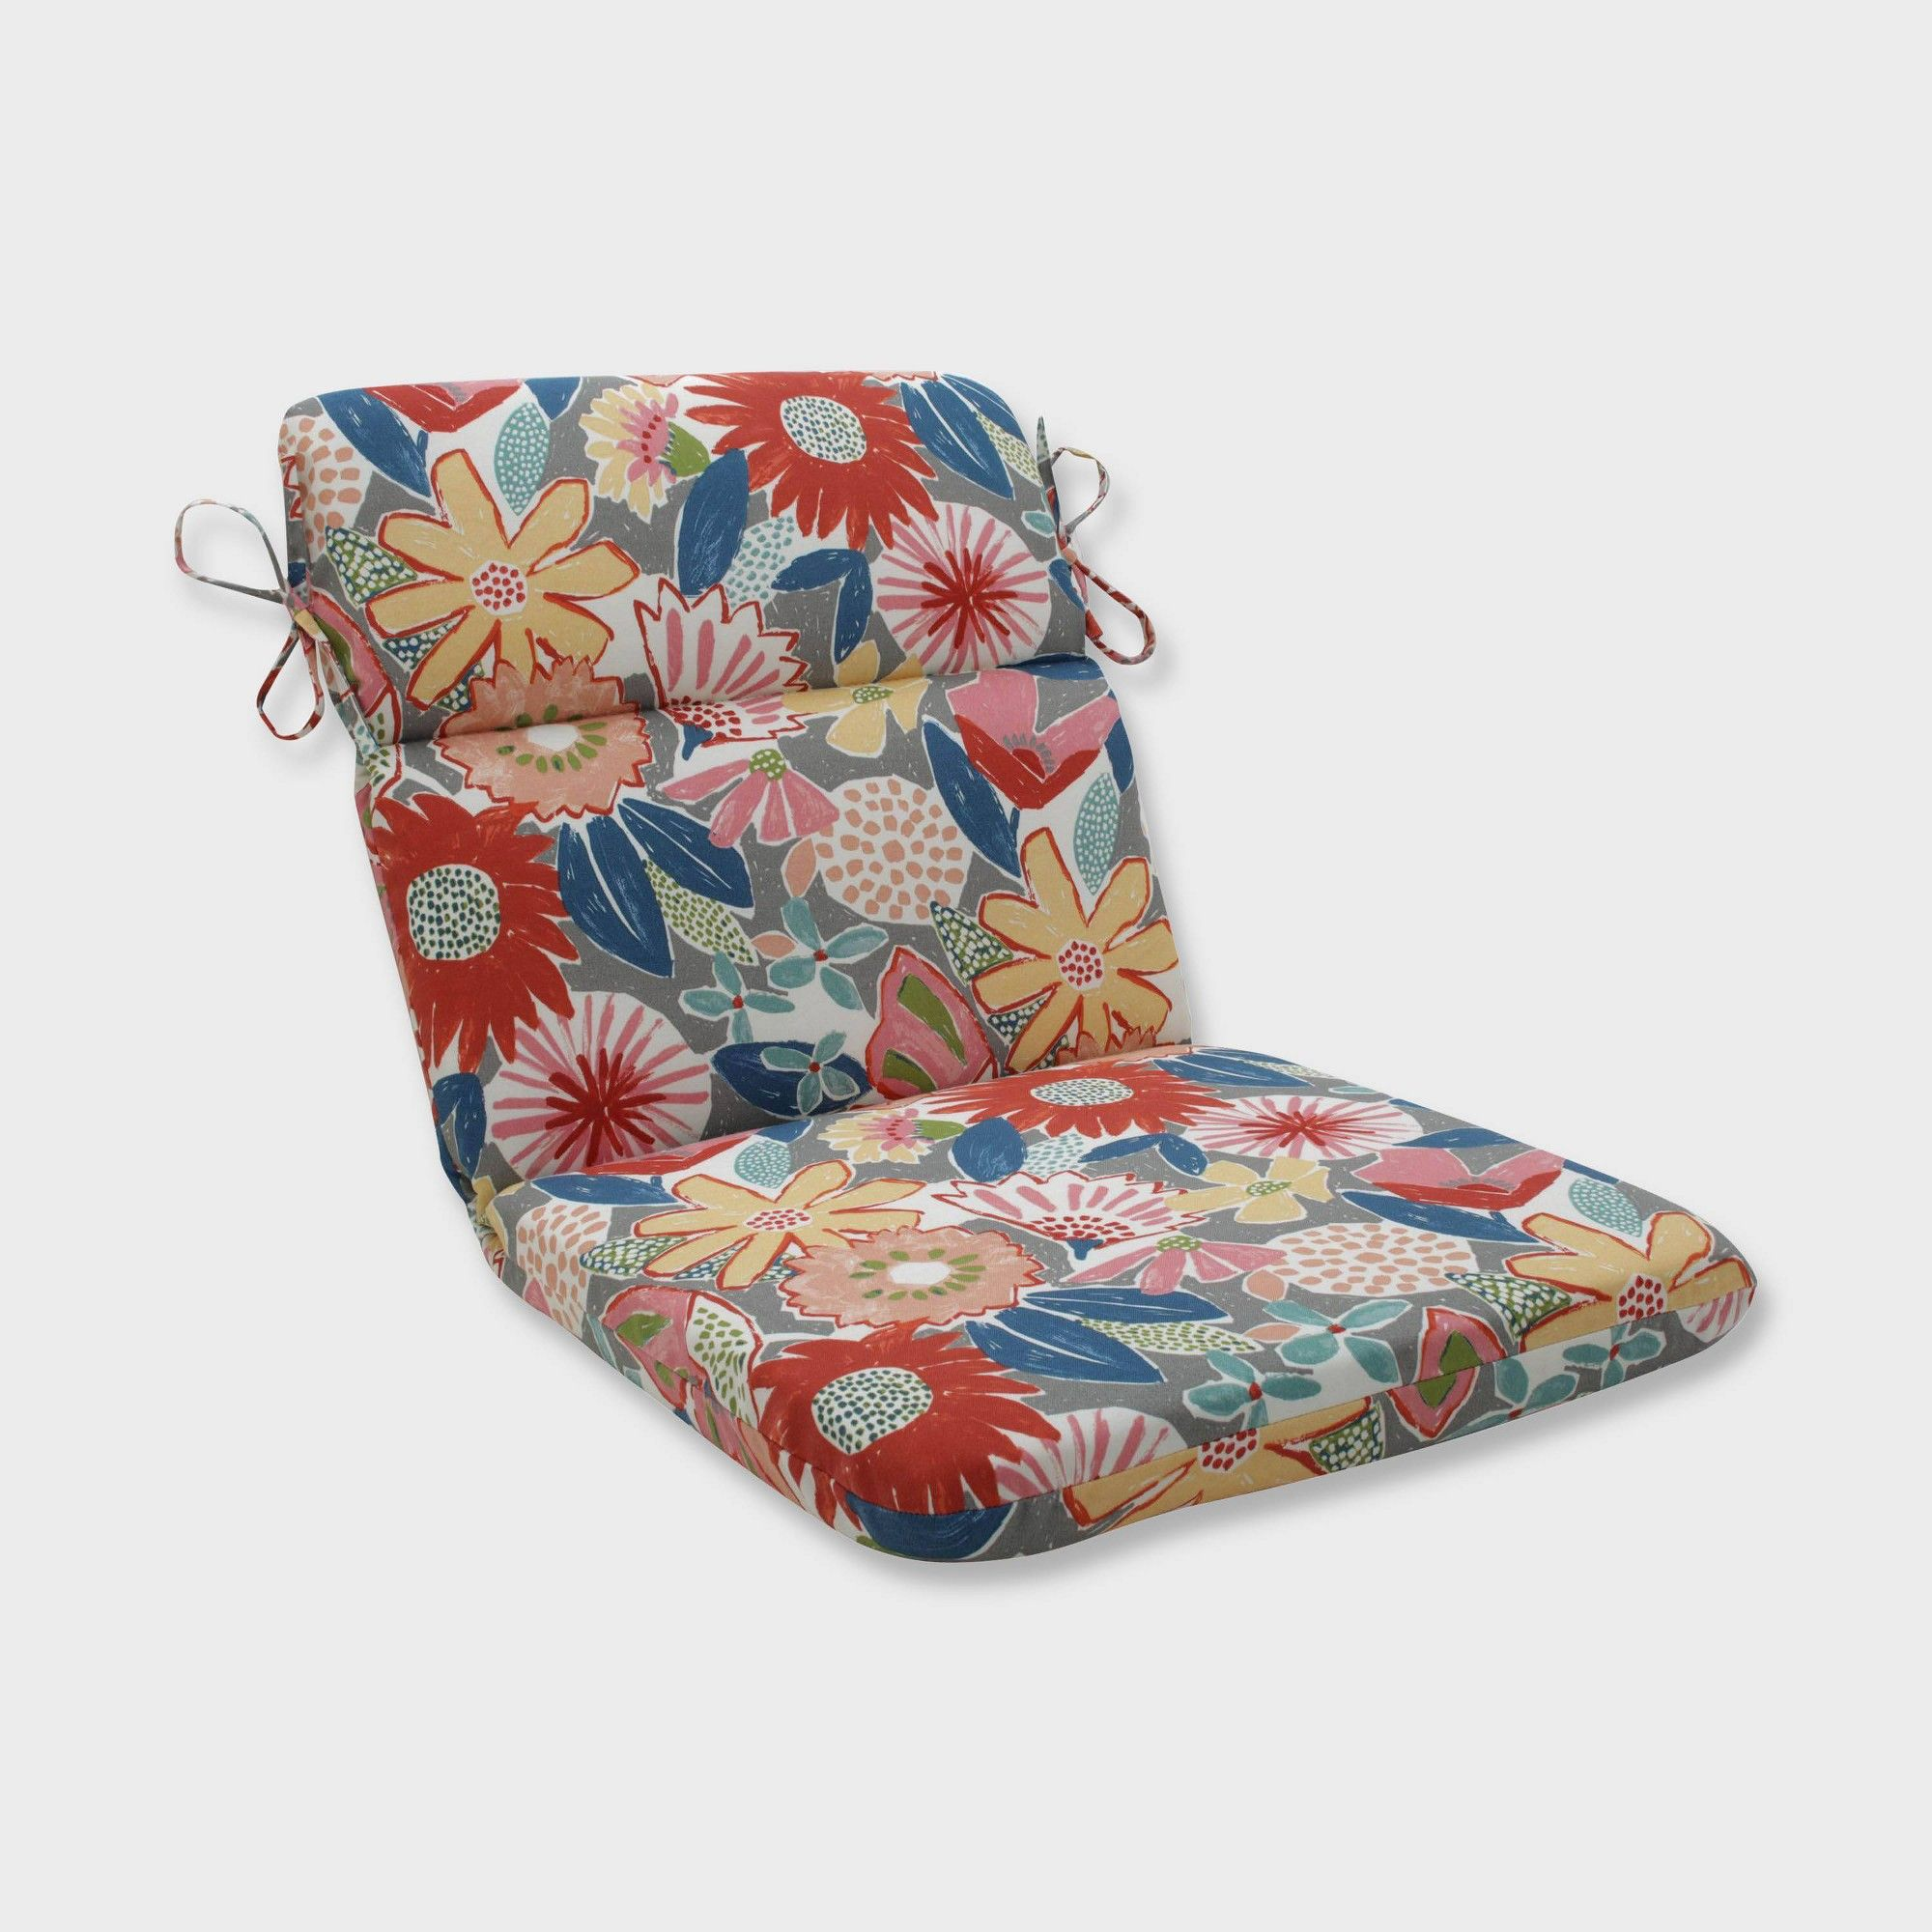 Sensational Catching Rays Poppy Rounded Corners Outdoor Chair Cushion Download Free Architecture Designs Sospemadebymaigaardcom